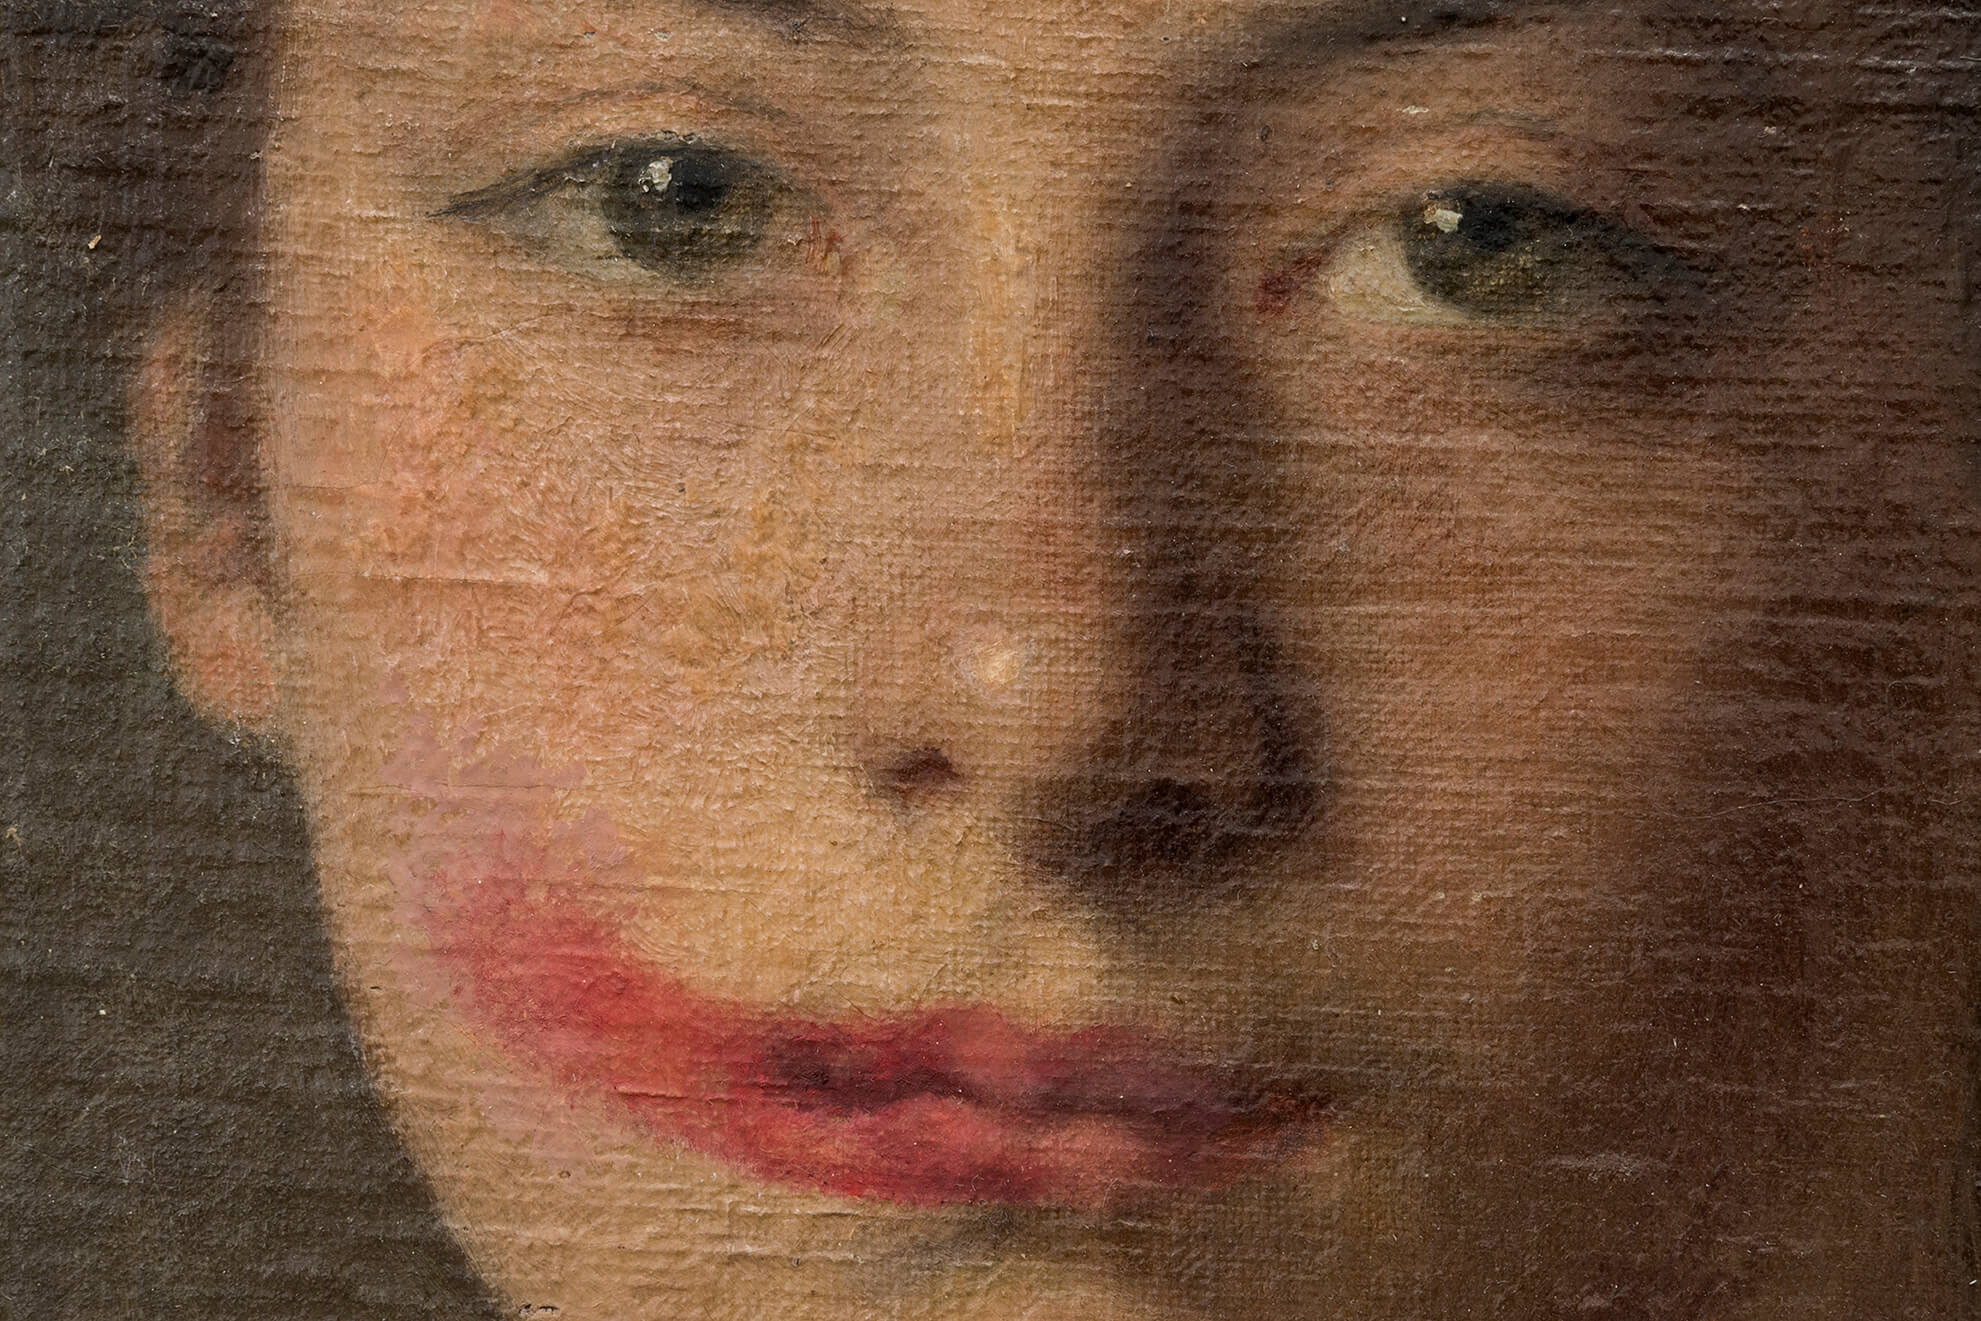 Woman with red lipstick, n.d. | Another Art Exhibition | ProjecteSD